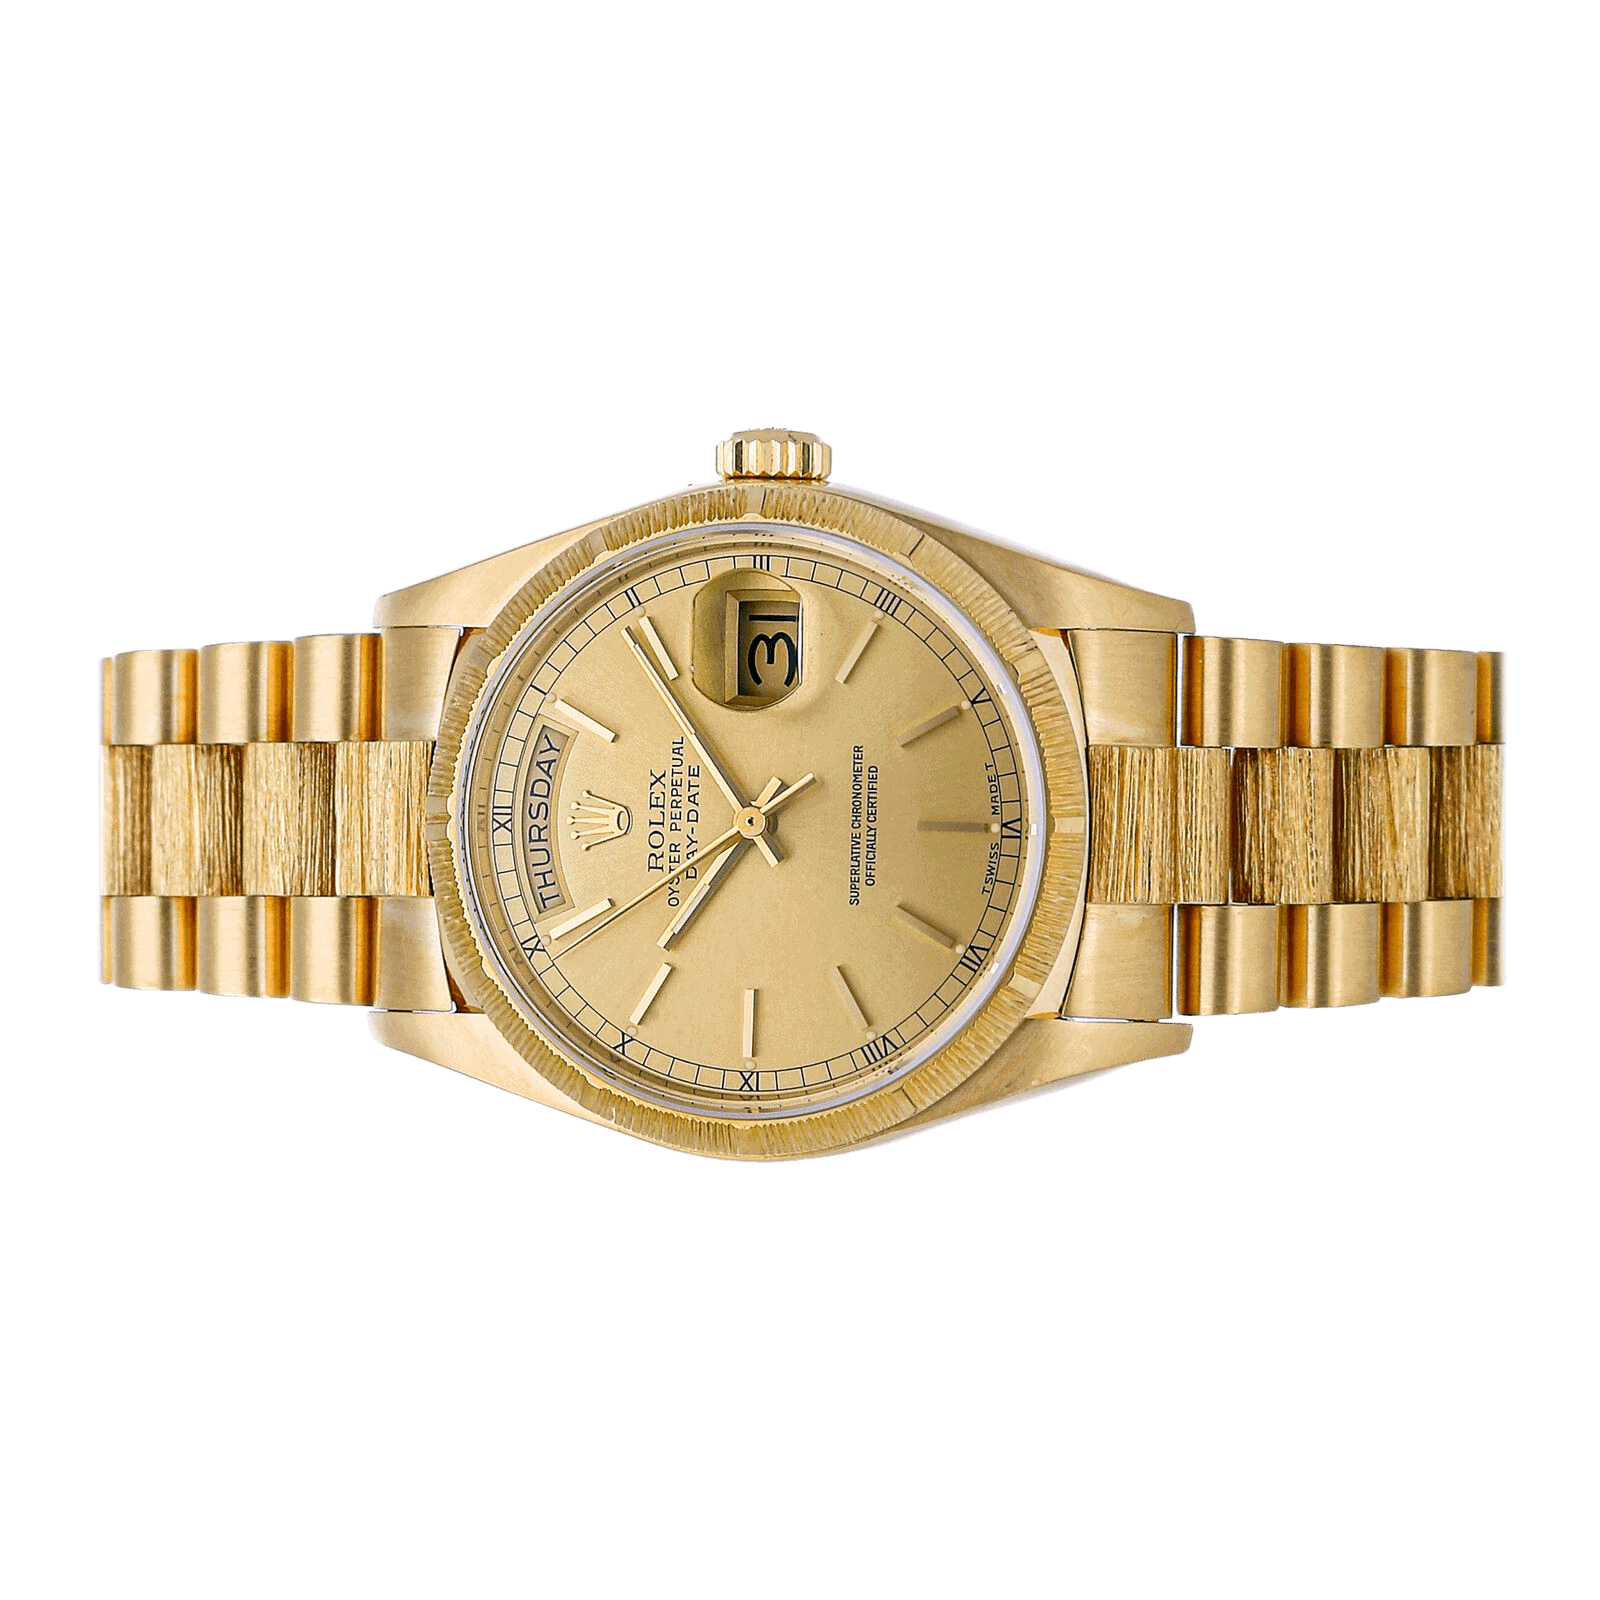 Rolex watch with golden dial with view of side angle